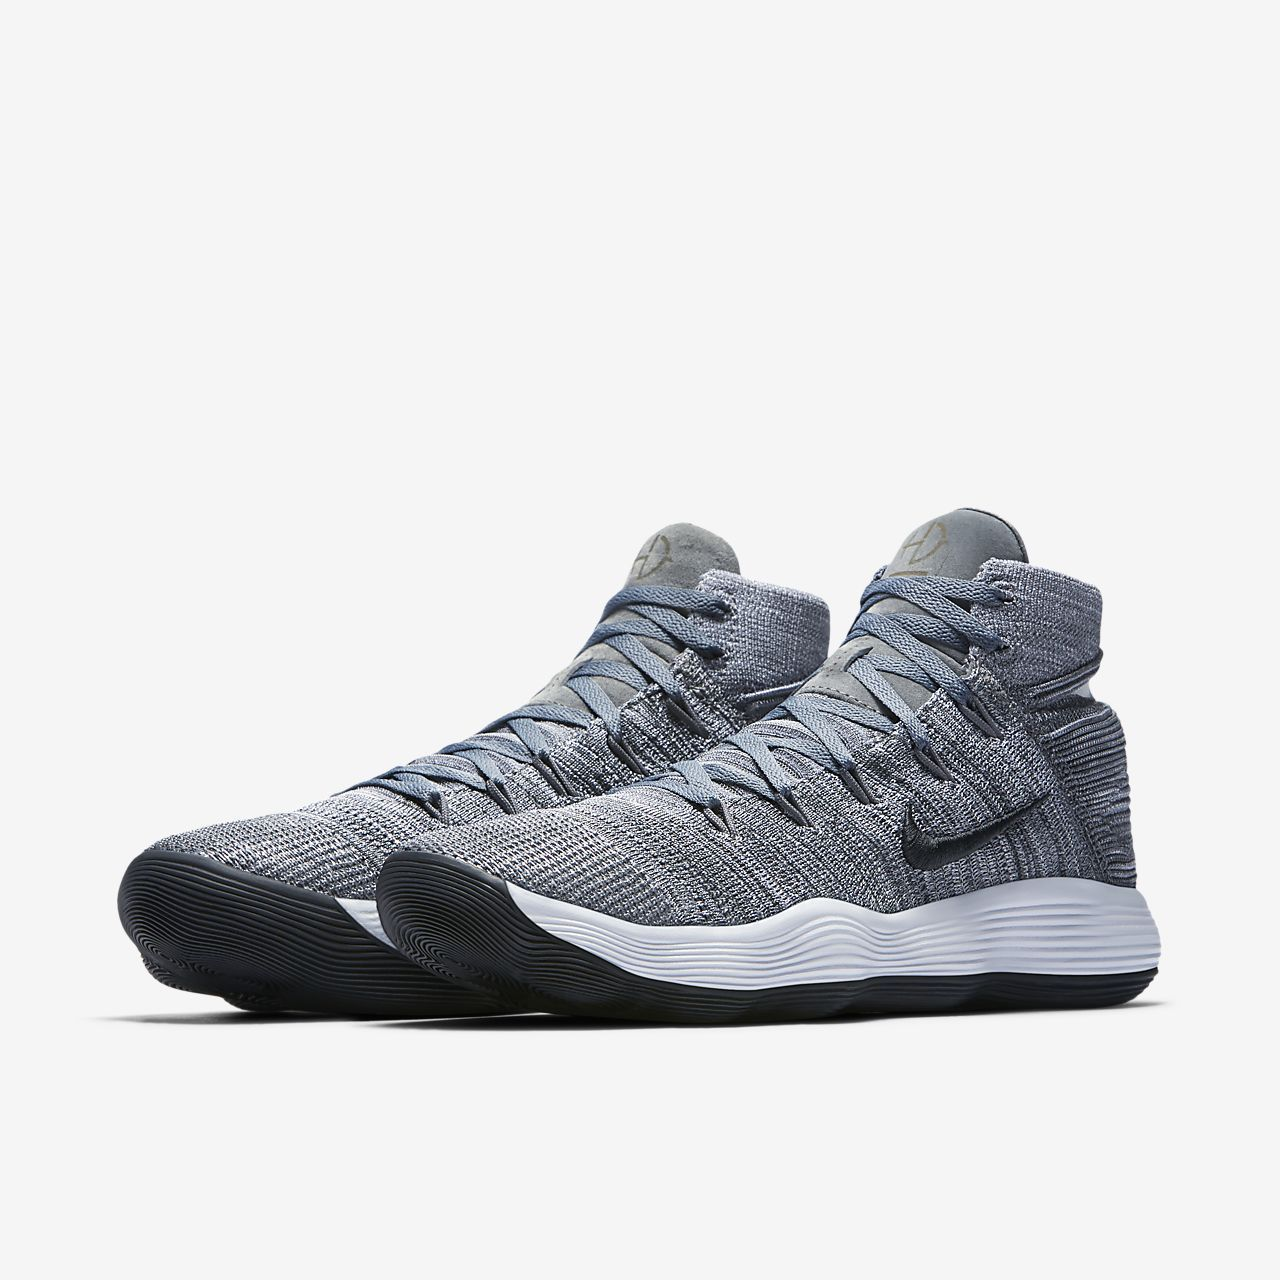 21 Best New Nike Shoes For Everyone Vintagetopia New Nike Shoes Urban Shoes Volleyball Shoes